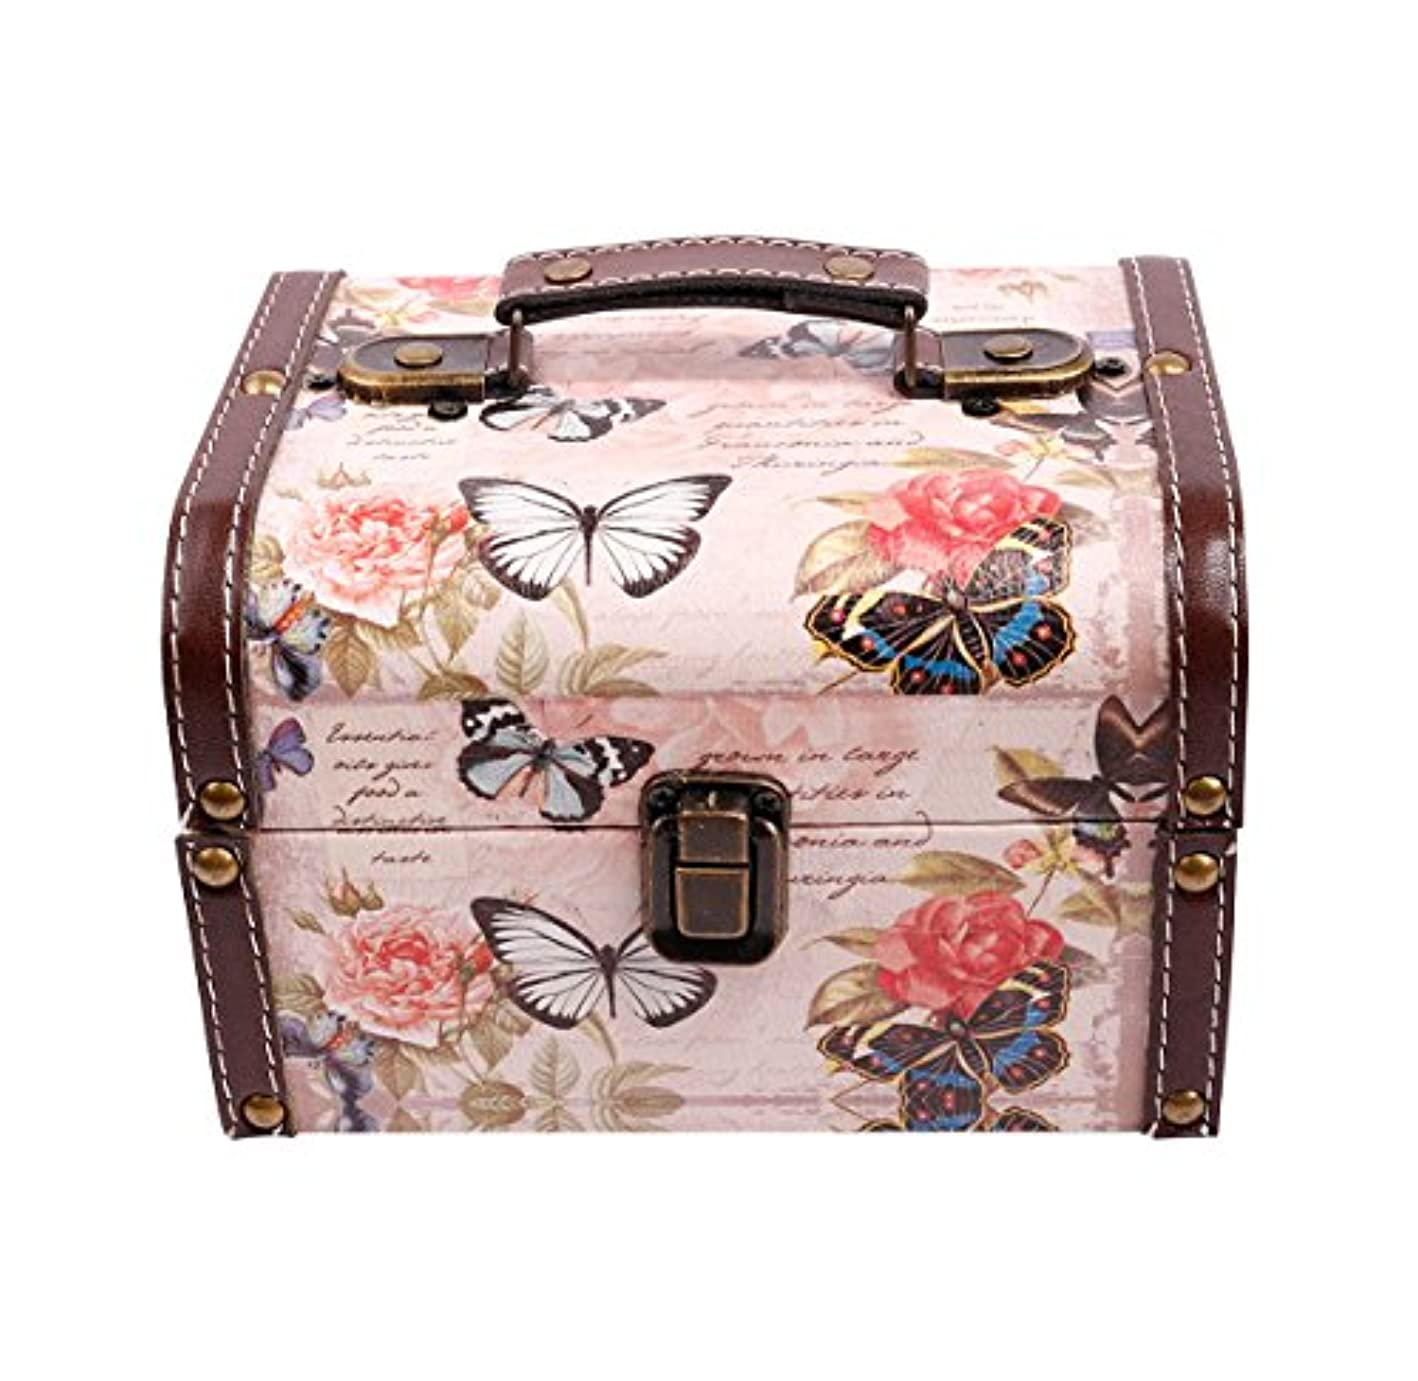 WaaHome Butterfly Wooden Treasure Boxes Decorative Jewelry Keepsakes Box for Kids Girls Women Gifts,Pink (7.1''X5.6''X4.7'')